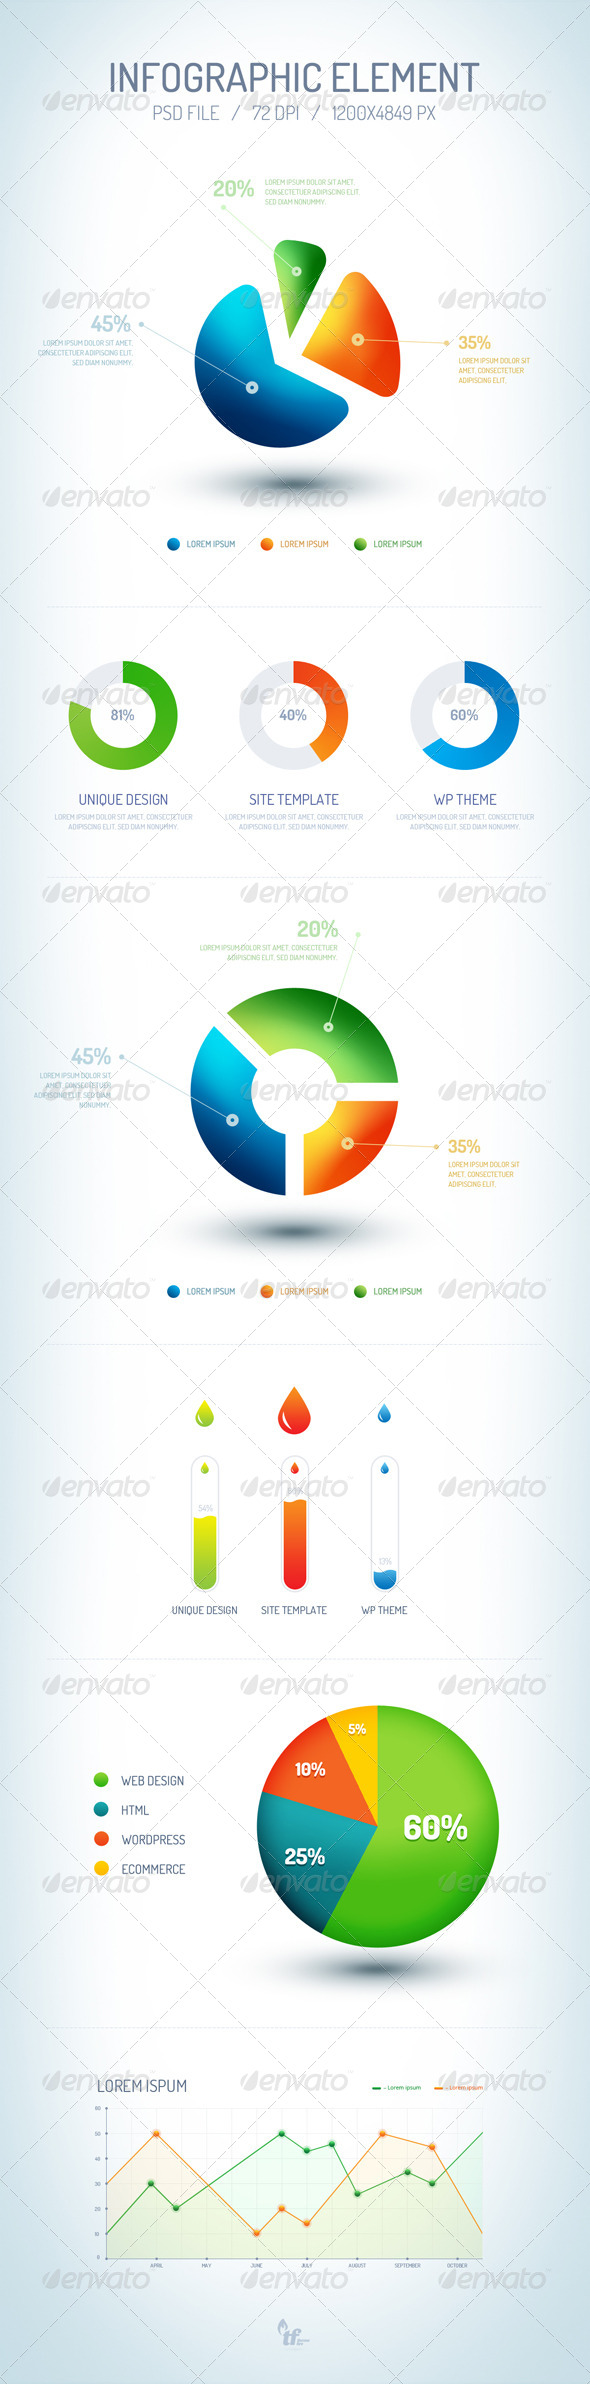 GraphicRiver Infographic Element PSD 6768523